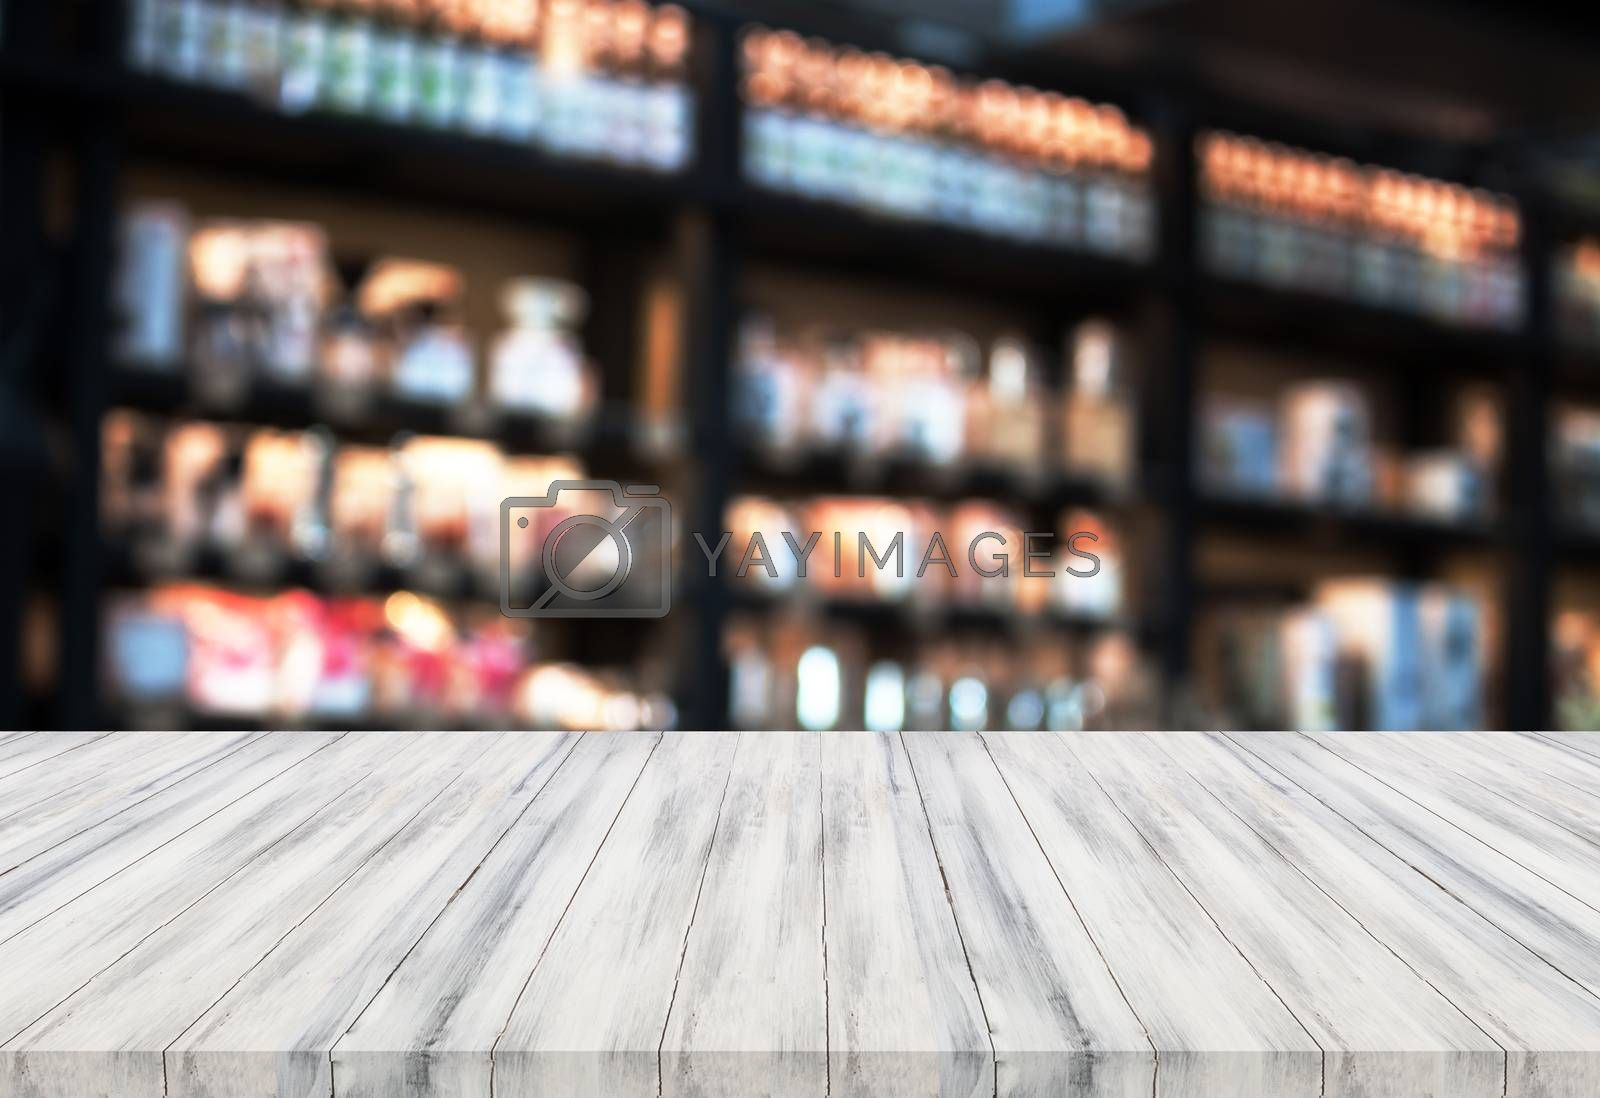 Luxury white wooden table top with blurred coffee shop background. product display template